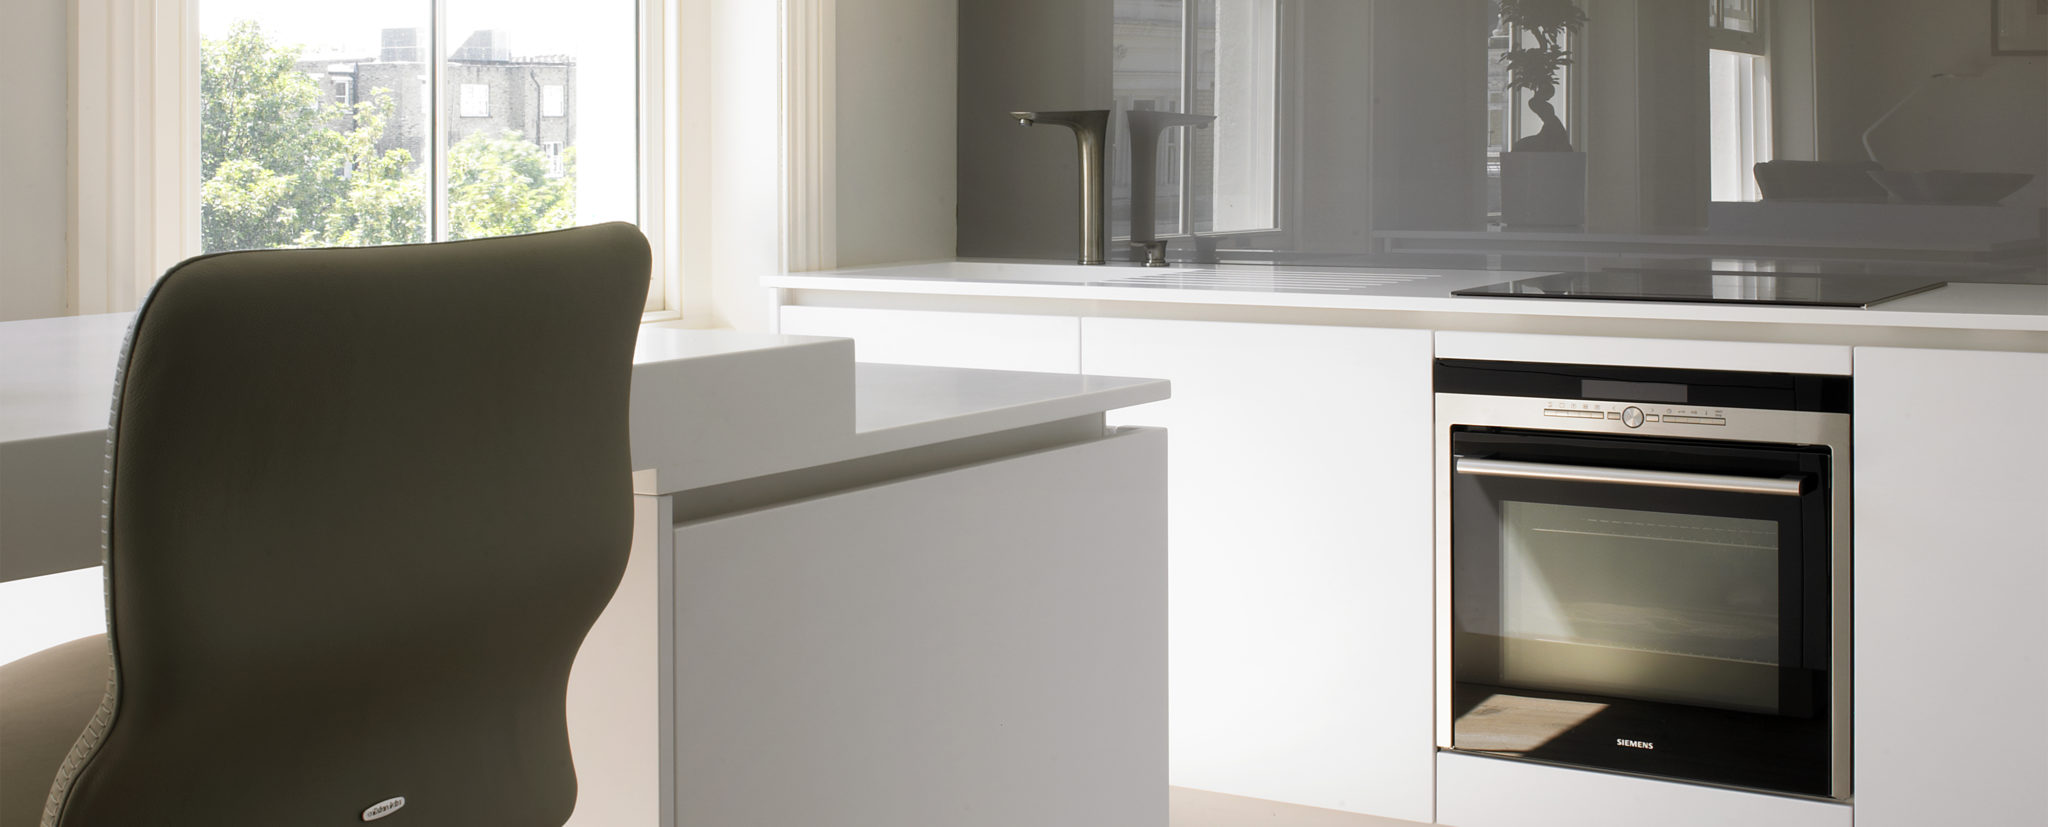 Compact Kitchen Design for Kensington Apartment. Minimalist white kitchen with mini island/breakfast bar.